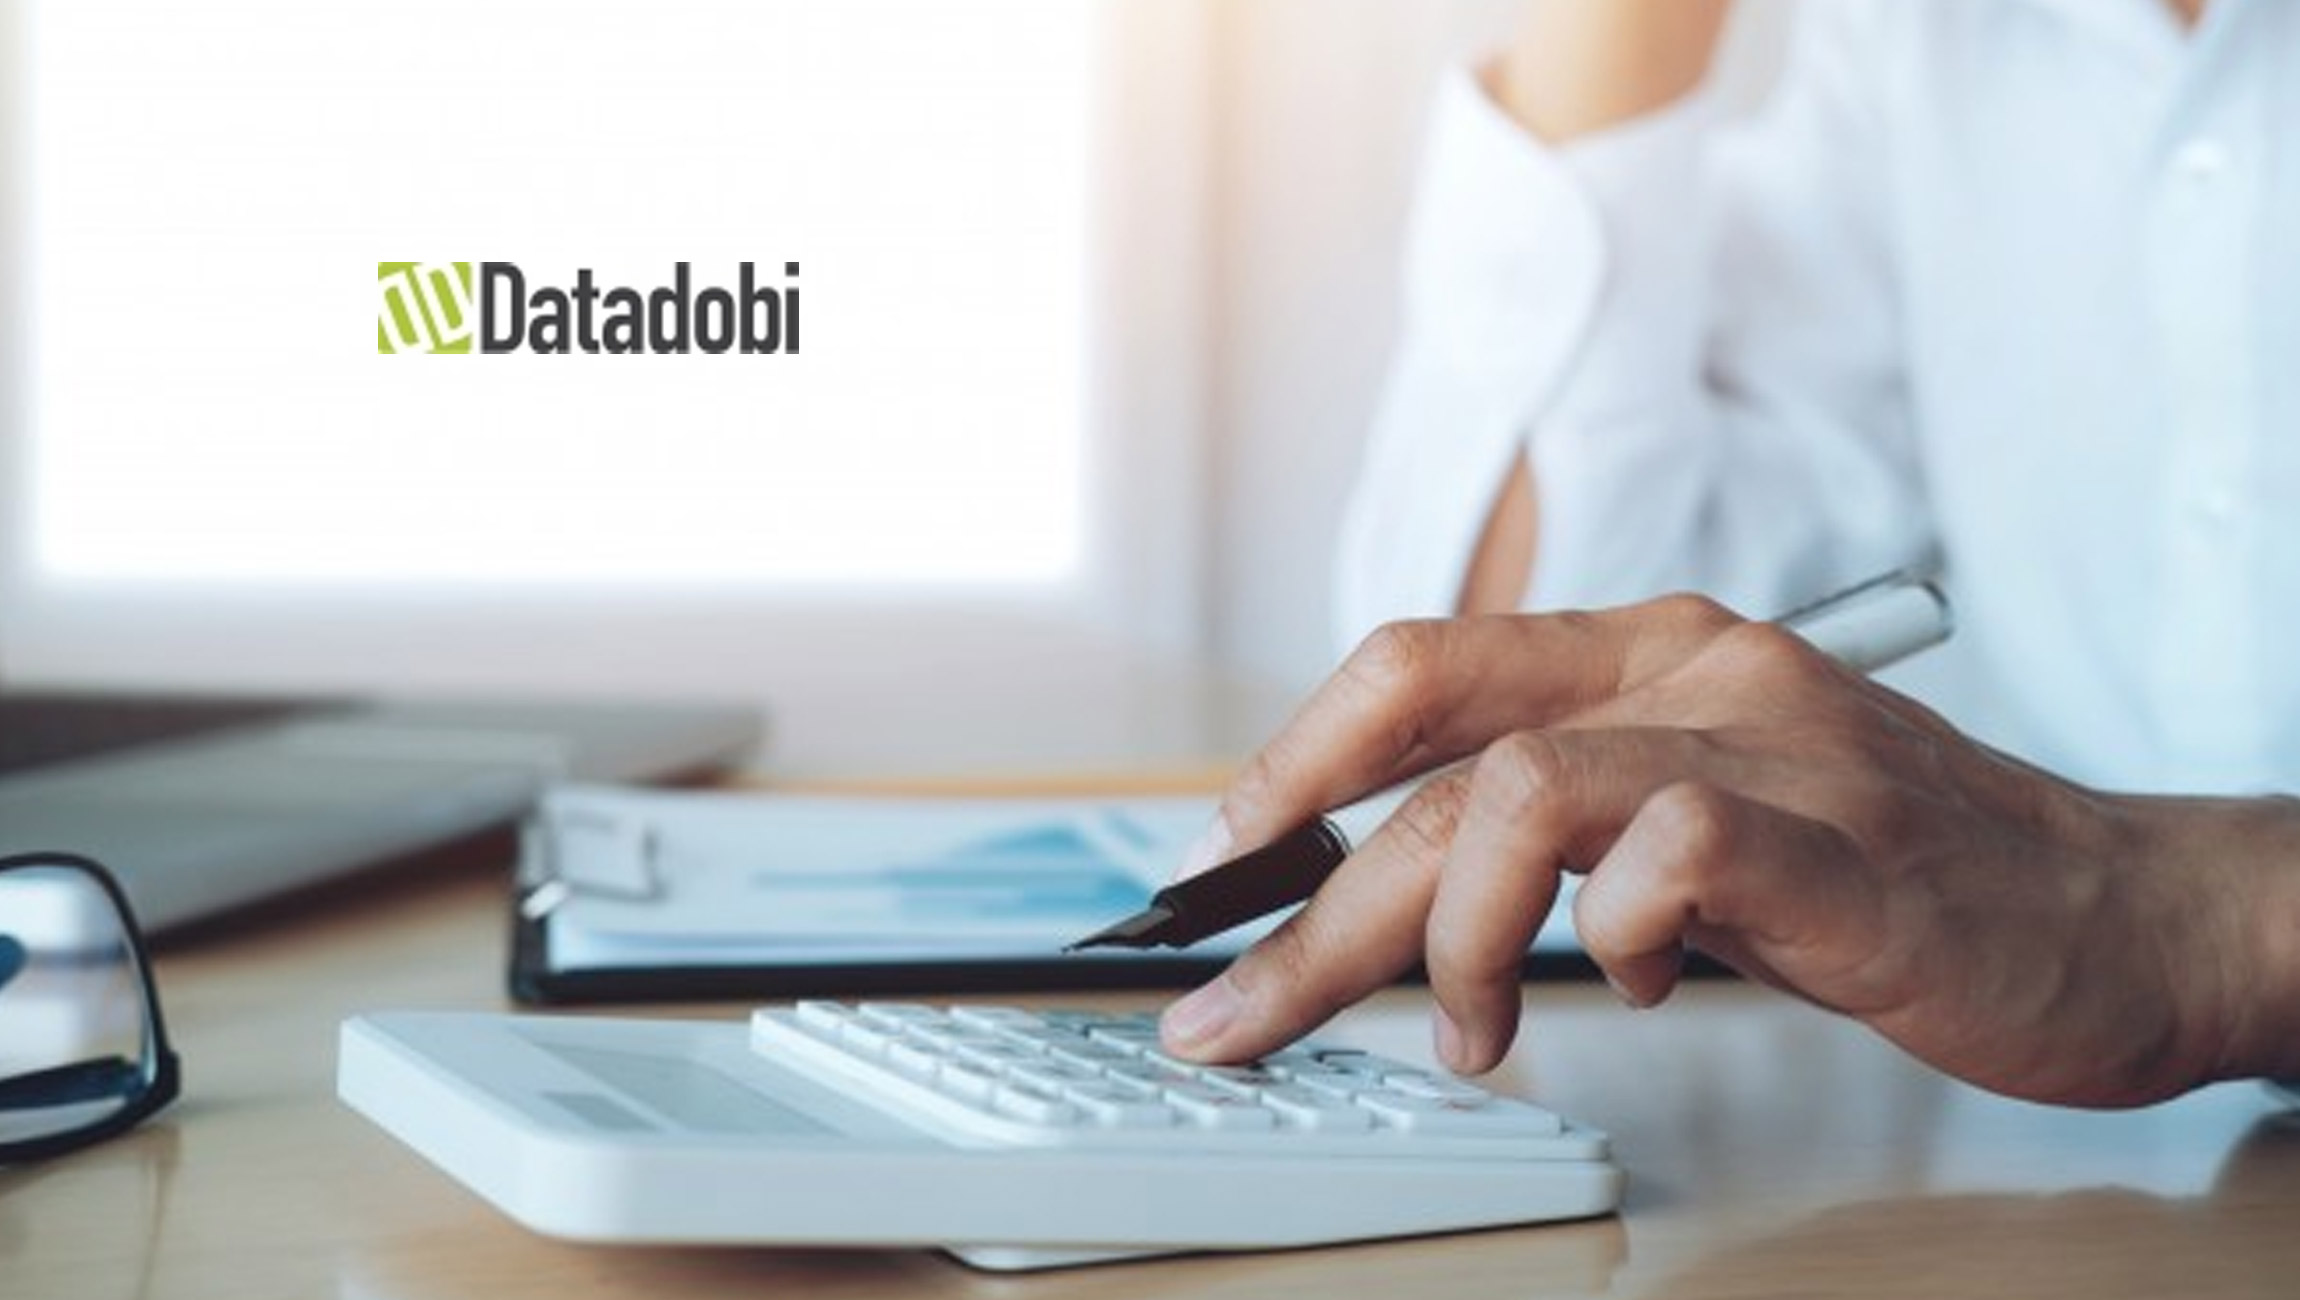 Datadobi Announces Integration with Westcon FlexPod Solutions, Providing Market-Leading Protection Capabilities for Any Cloud Strategy